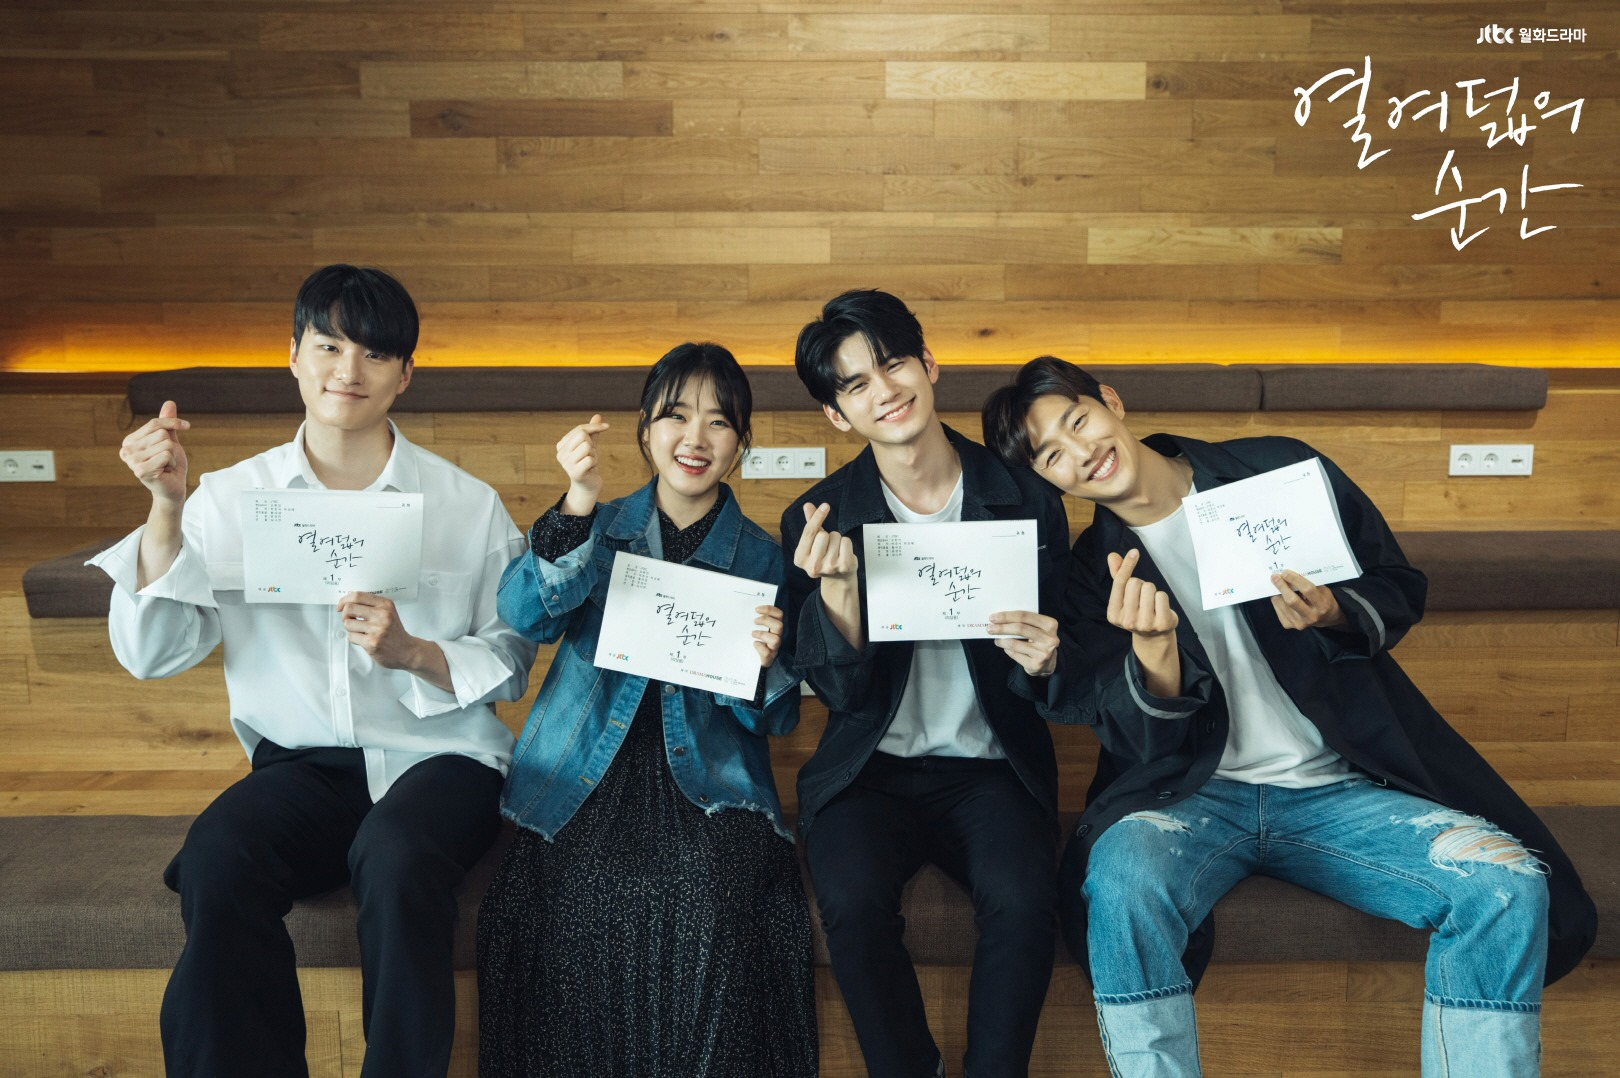 Ong SeongWoo, Moments Of Eighteen cast, Moments Of Eighteen summary, Moments Of Eighteen drama, Ong SeongWoo drama, Ong SeongWoo 2019, Ong SeongWoo drama poster, Ong SeongWoo moments of eighteen